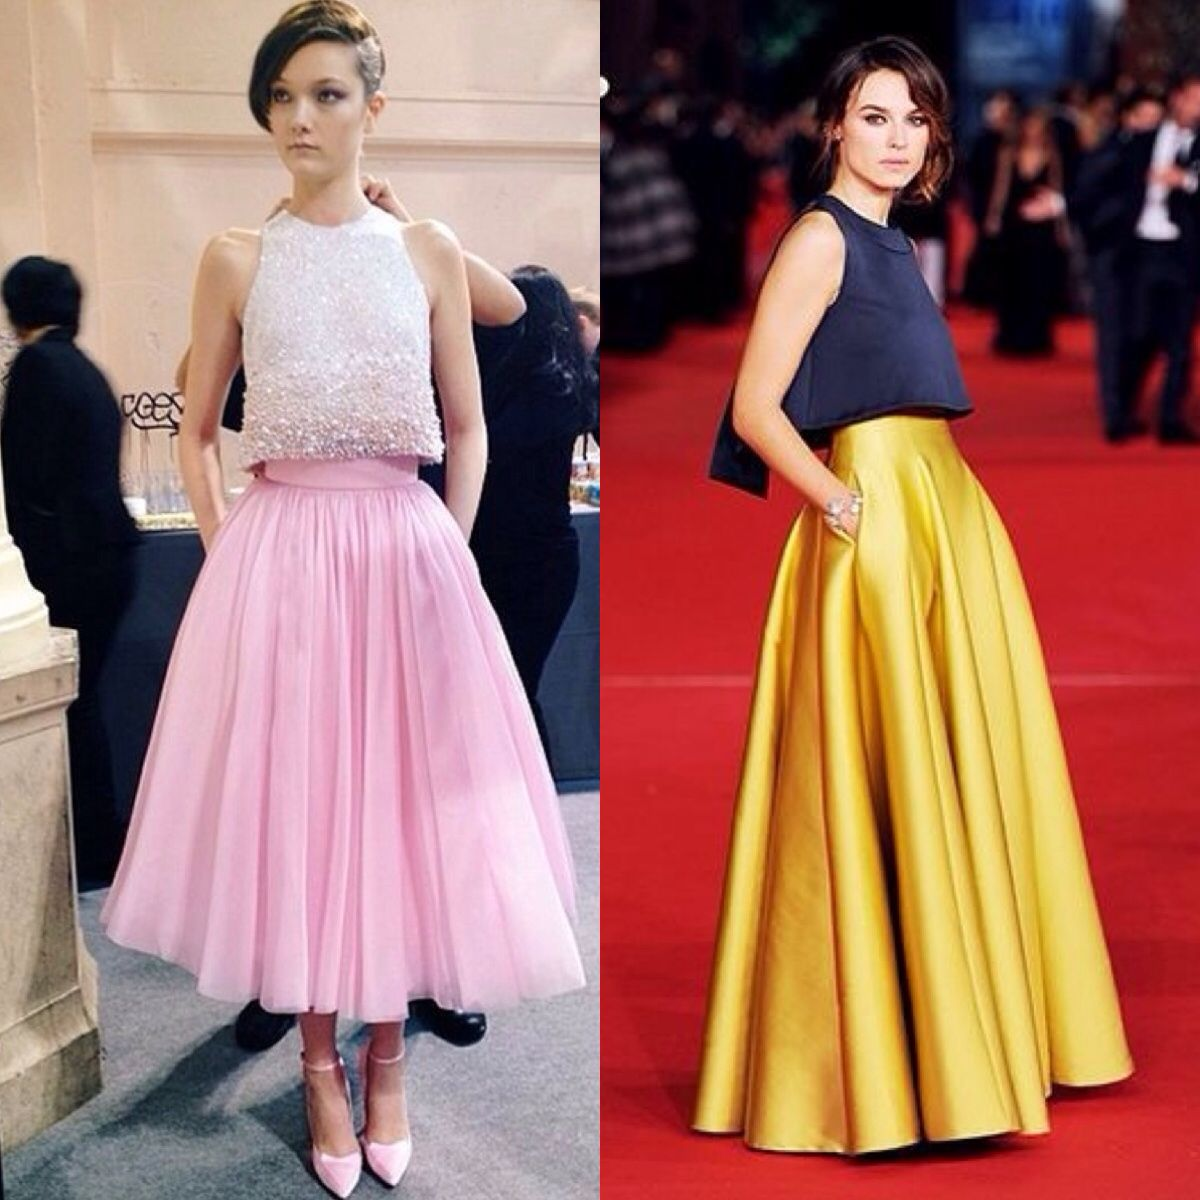 Separates mean more options Fashion, Dresses, Tulle skirt